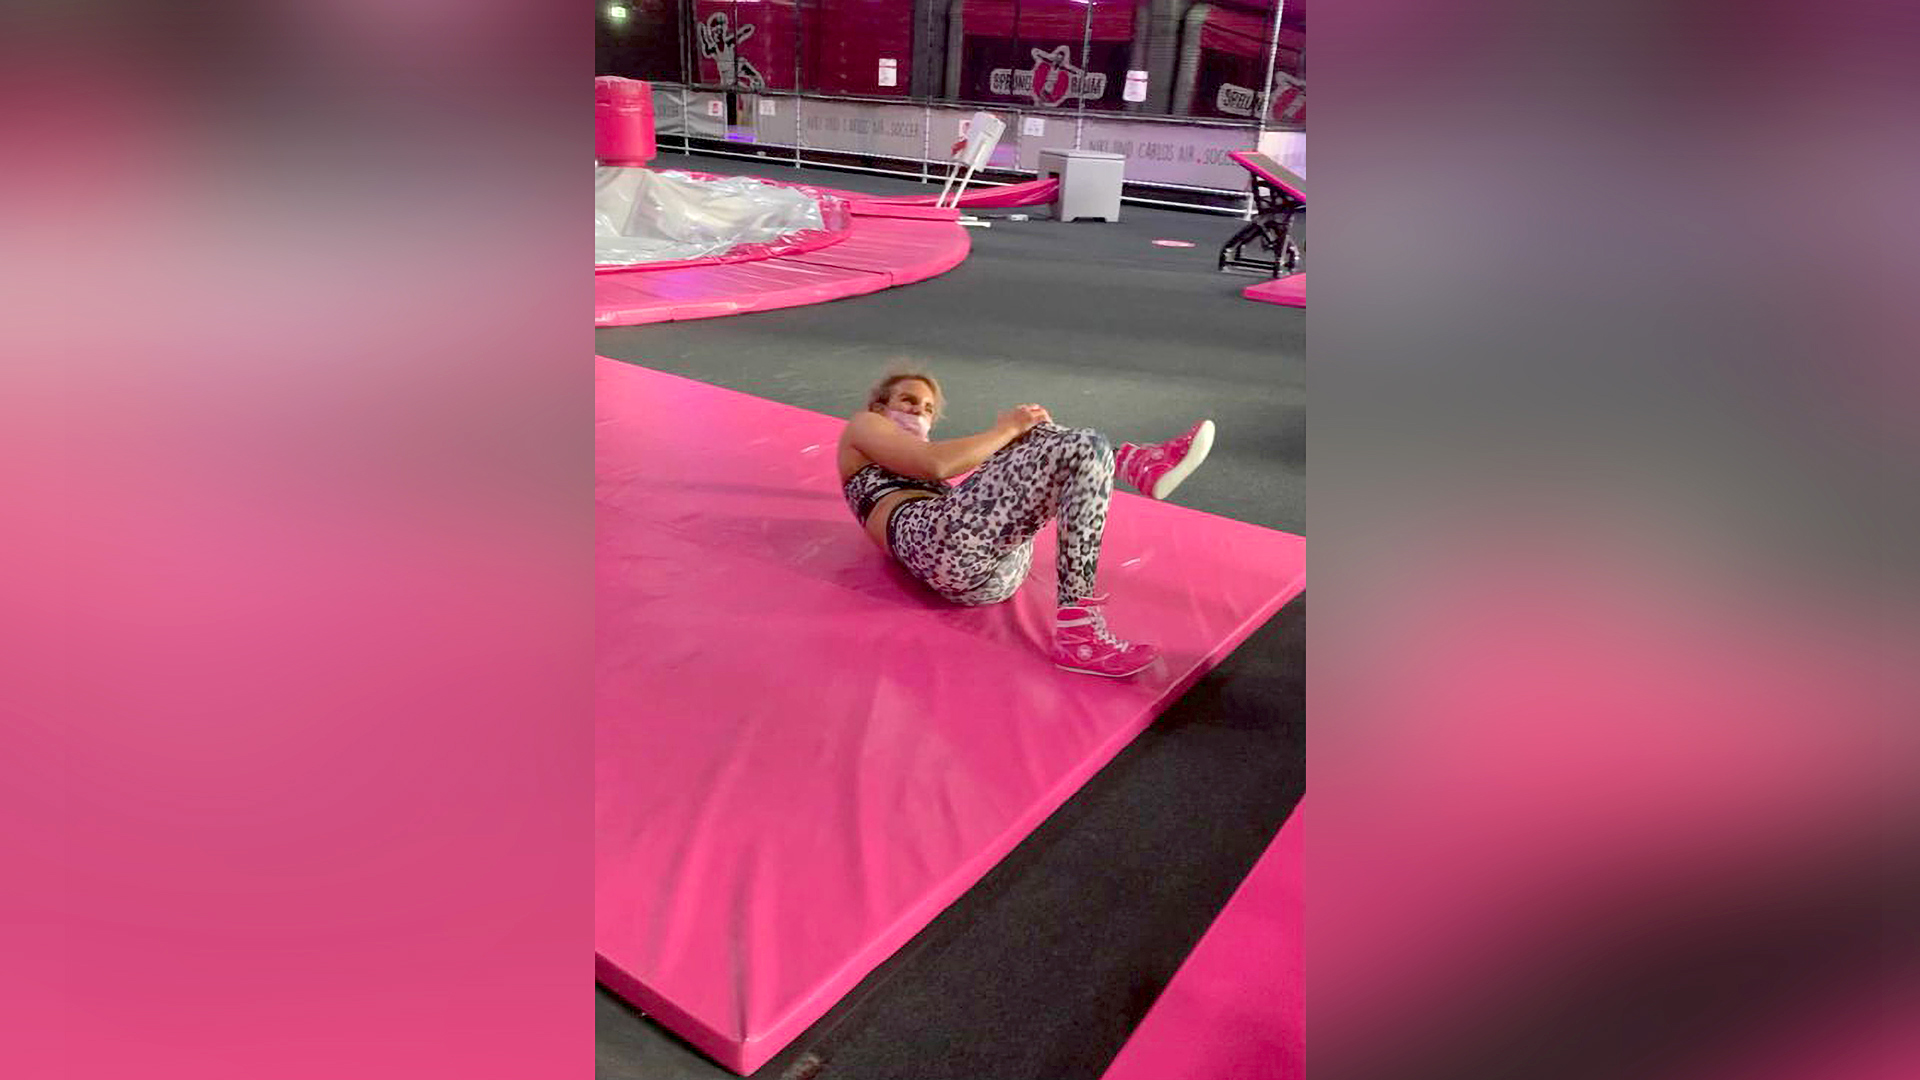 VIDEO: No Obstacle: Gruesome Knee Won't Stop Me, Blonde Boxing Champ Tells Ninja Warrior